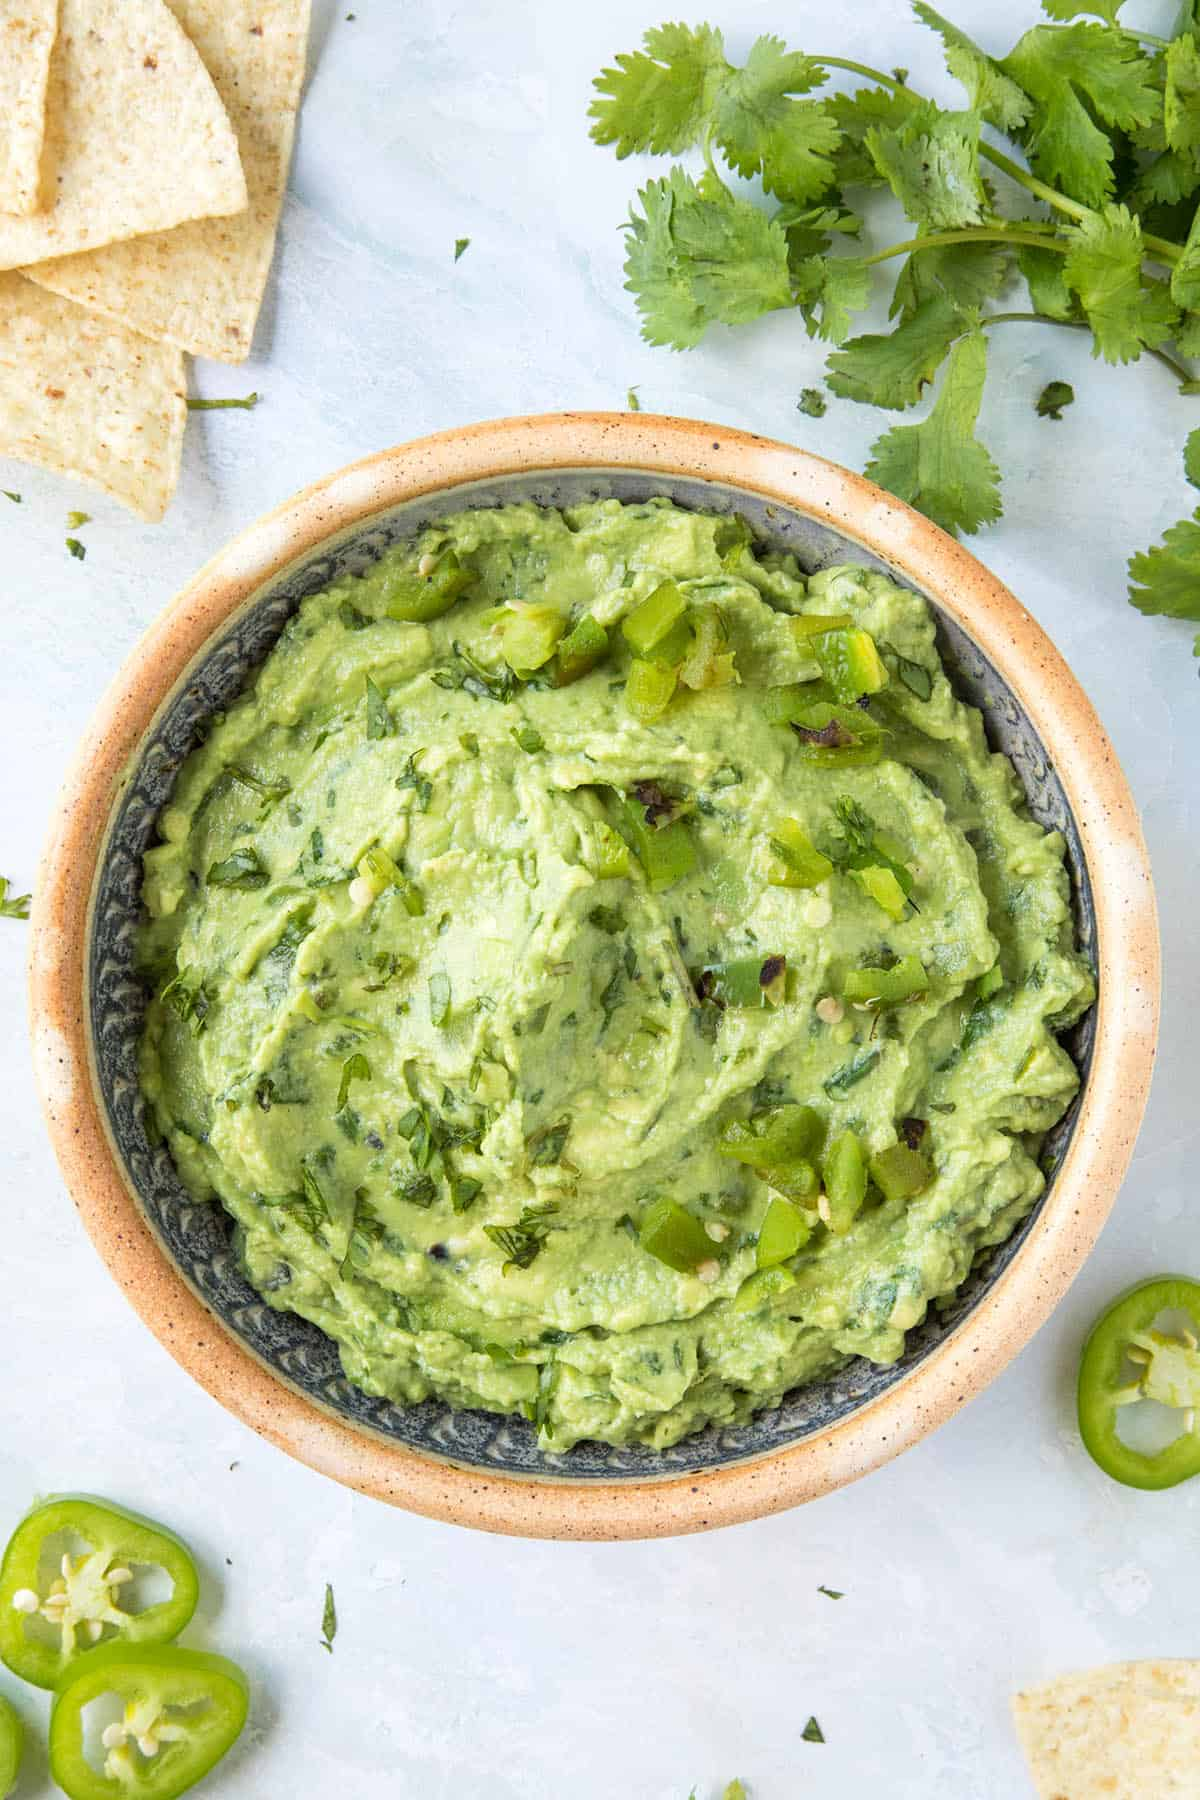 Guacamole in a bowl, ready to serve